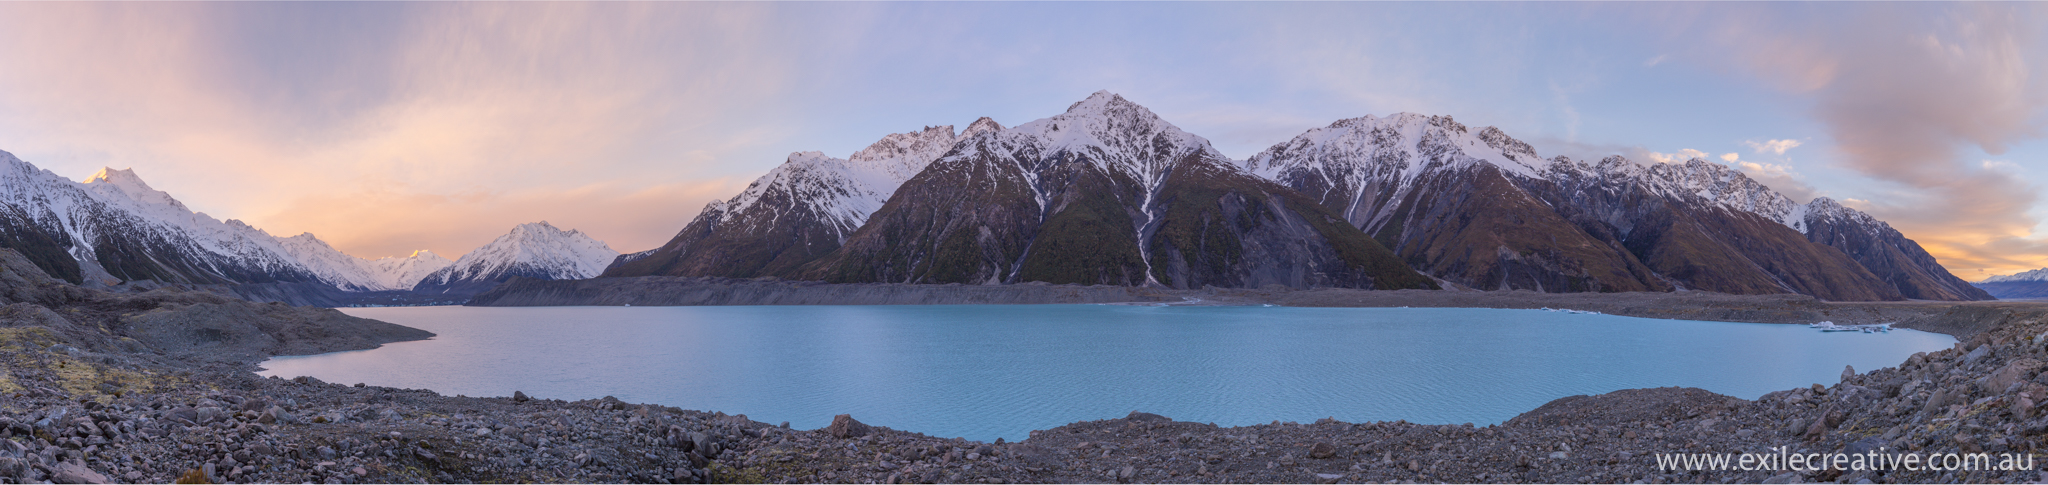 Tasman Lake!  Canon 5Dmiii, 16-35L III IS @ 35mm, ISO200, f/5.6, 1/100s  Stitched Pano